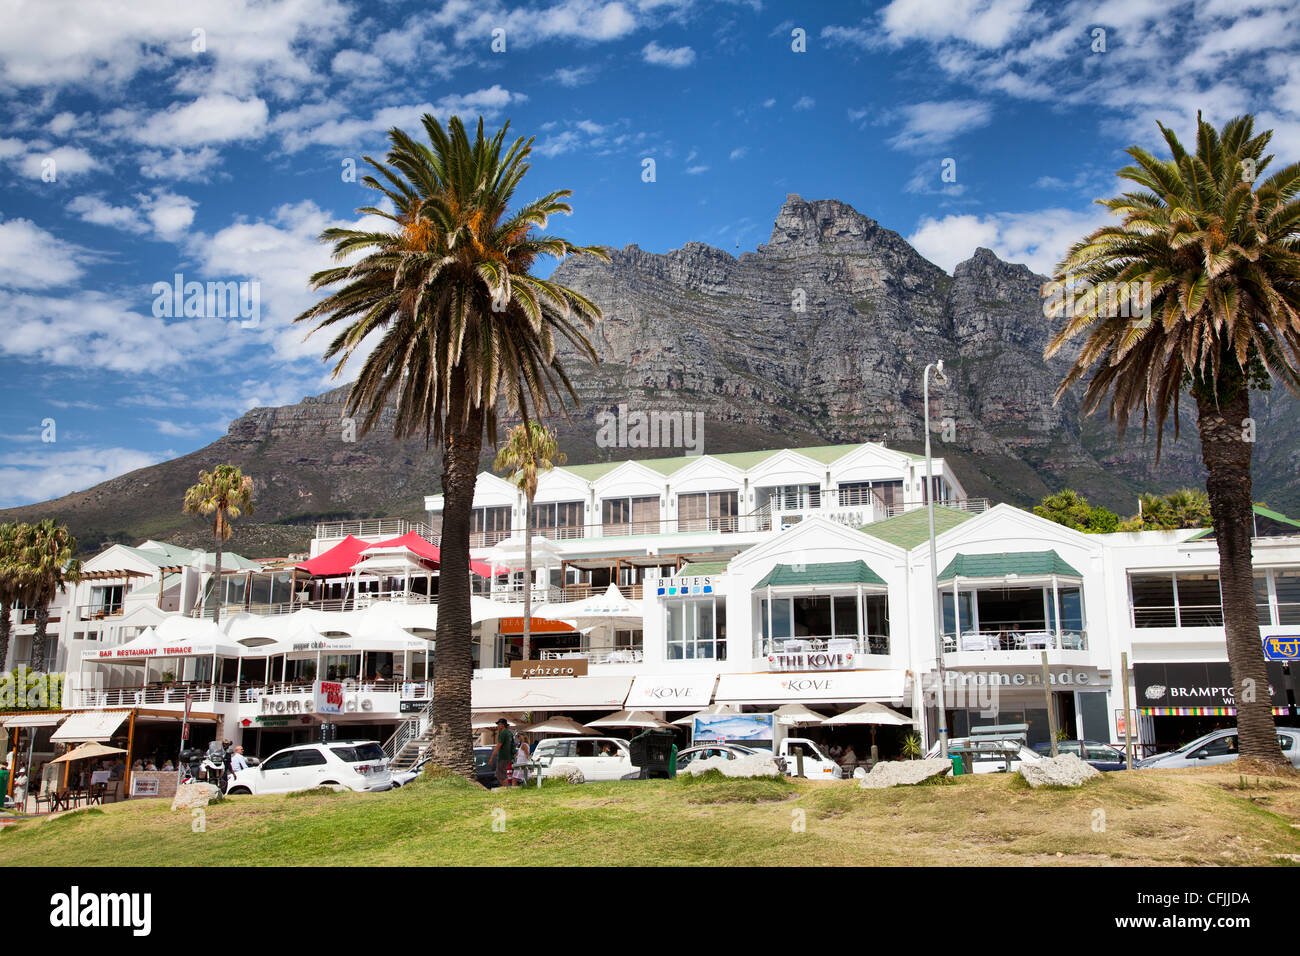 Restaurants And Cafes On Camps Bay Beach Promenade Stock